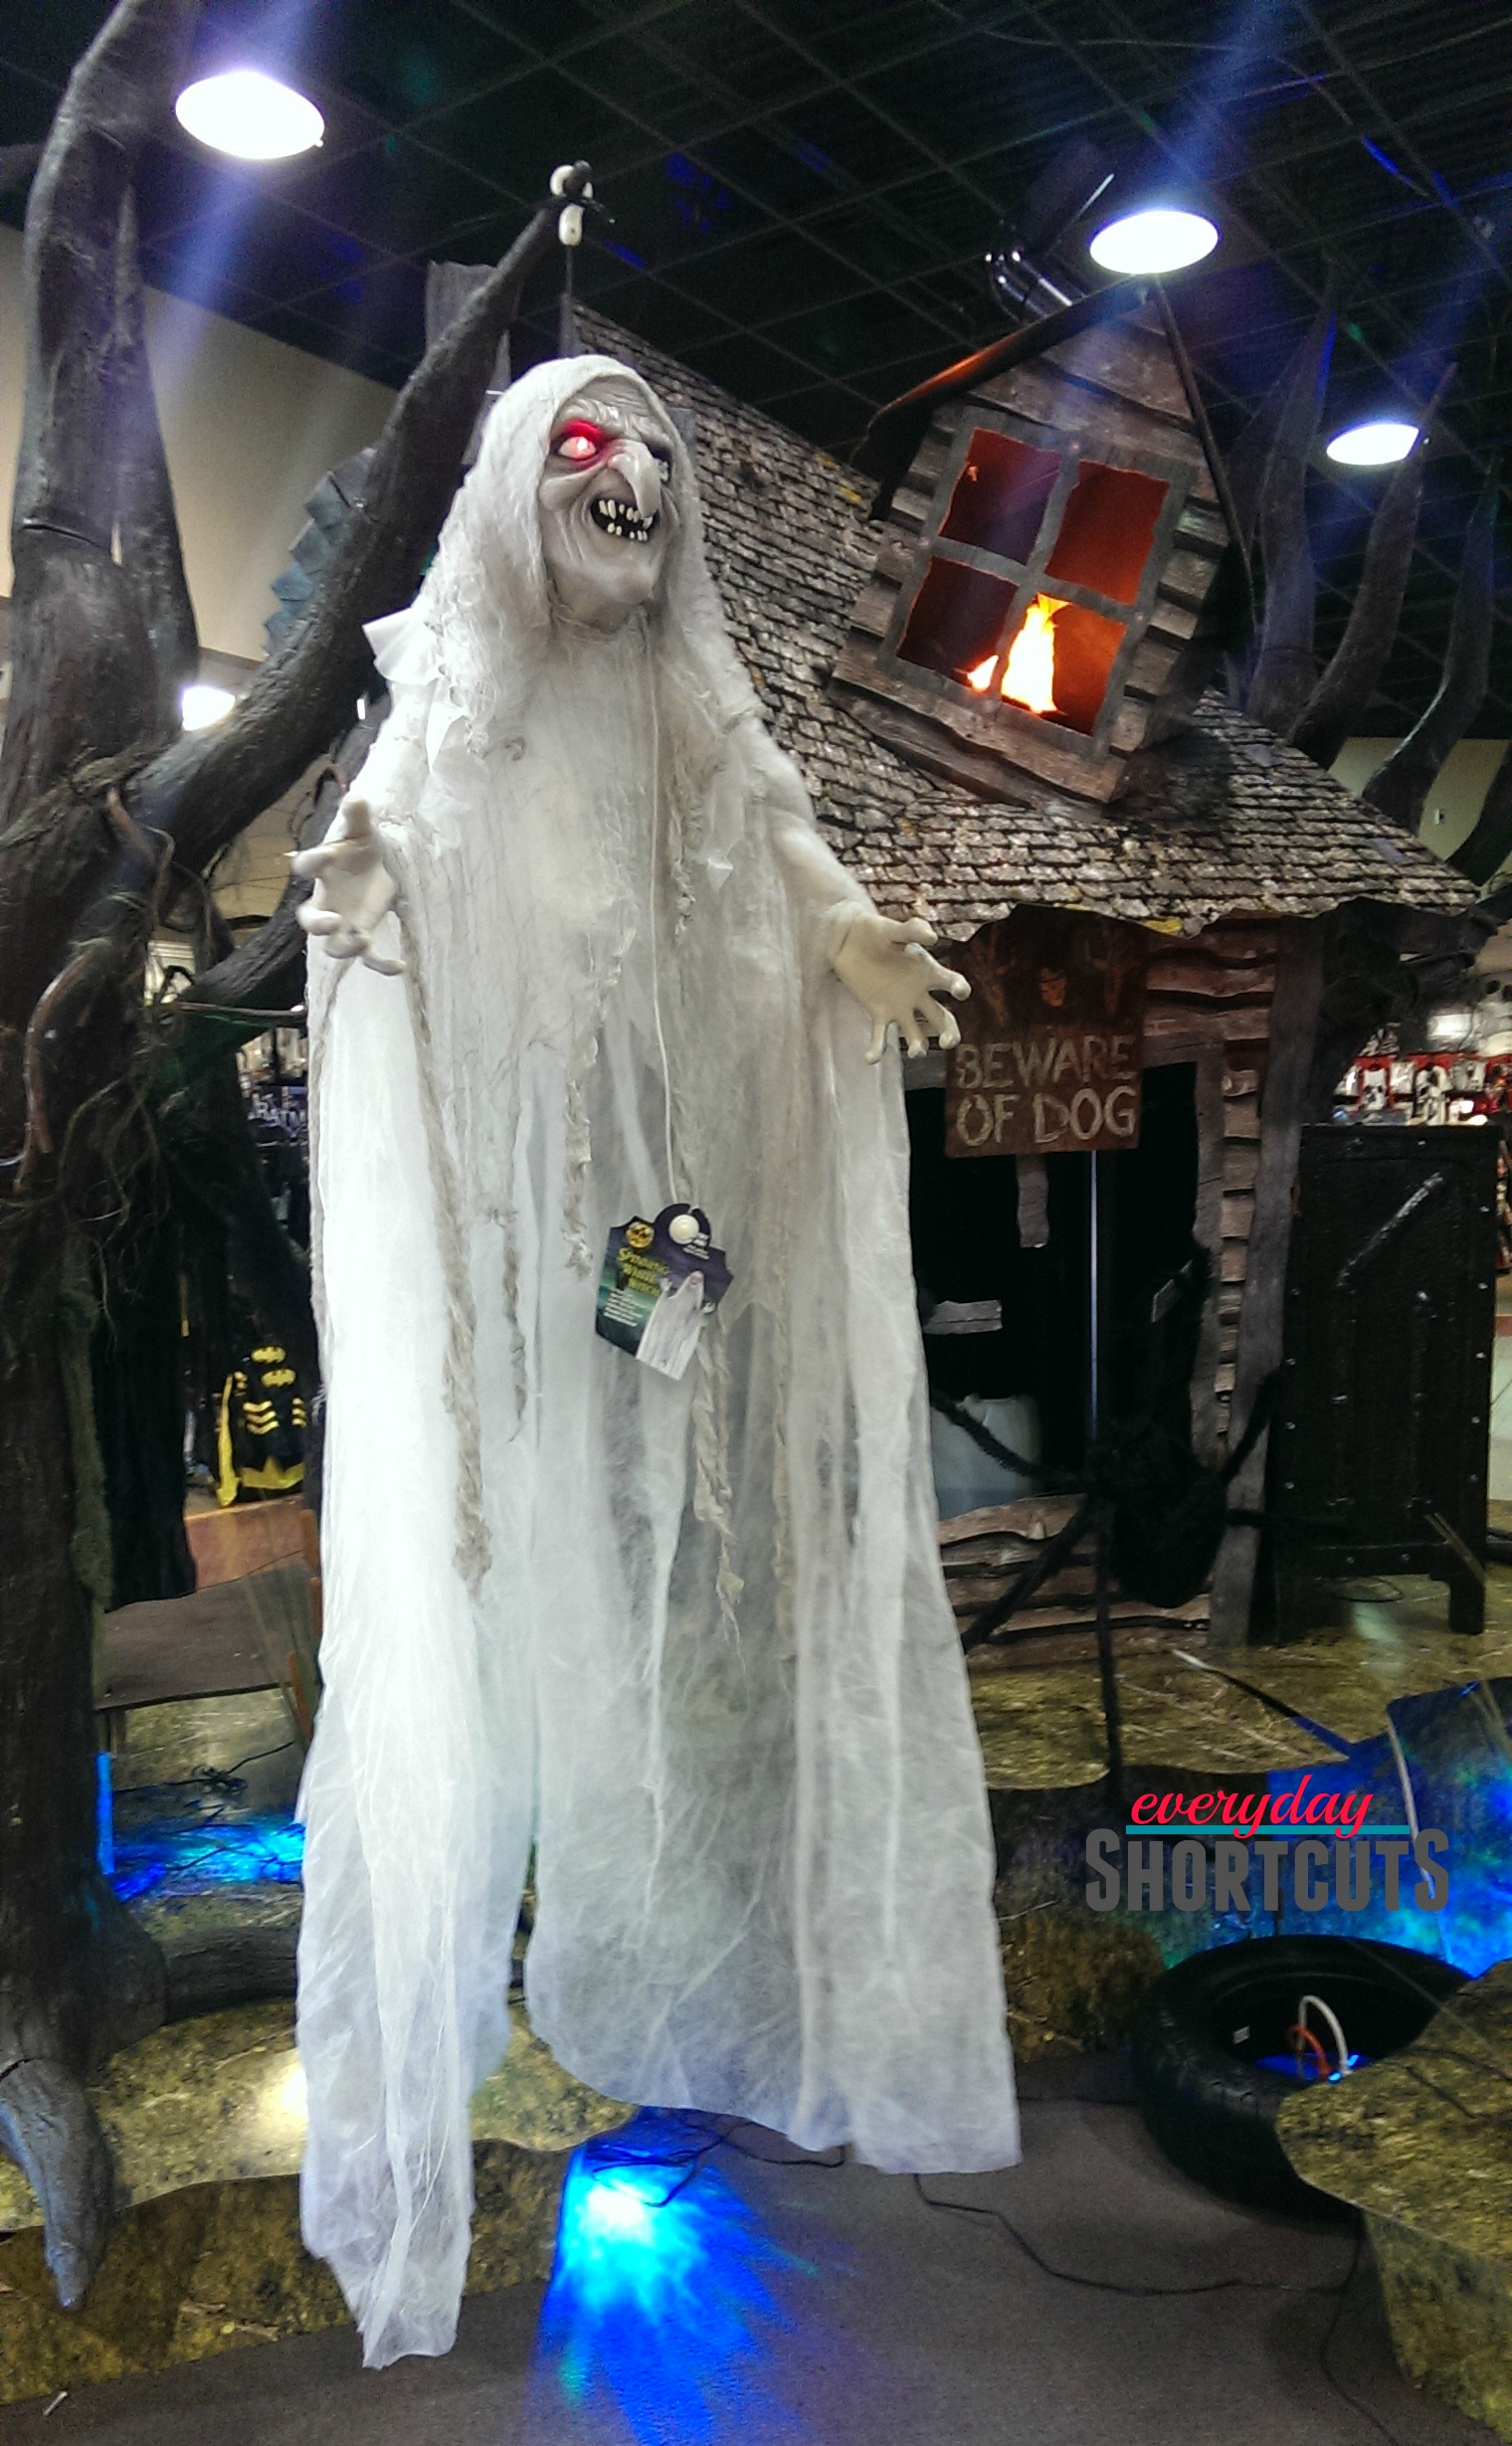 Everything Halloween at Spirit Halloween - Everyday Shortcuts